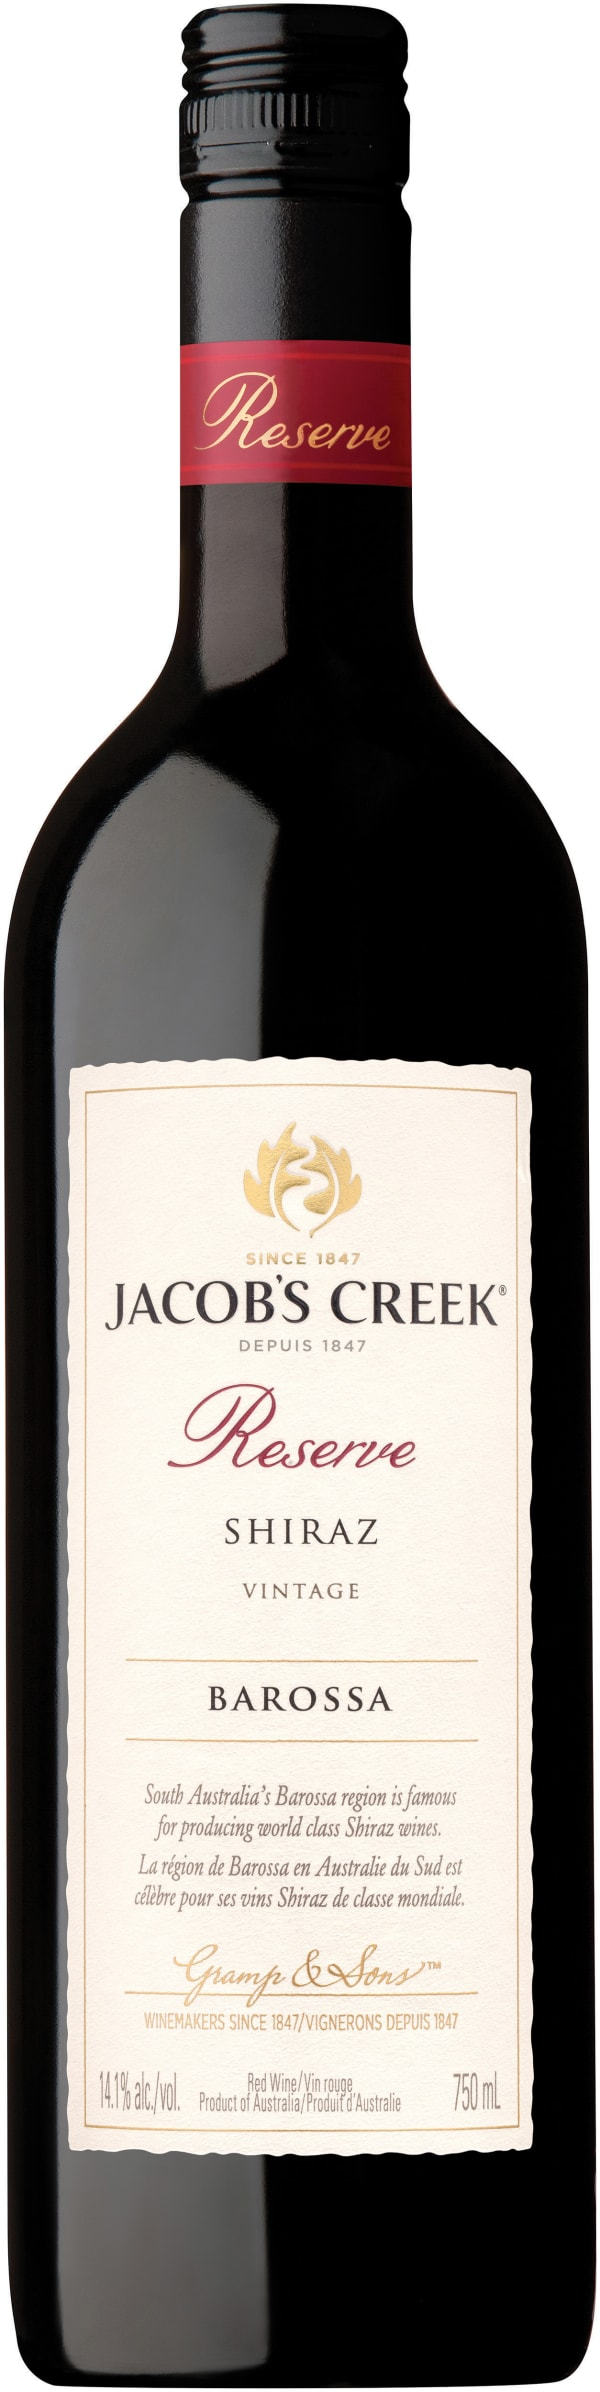 Jacob's Creek Reserve Shiraz 2014